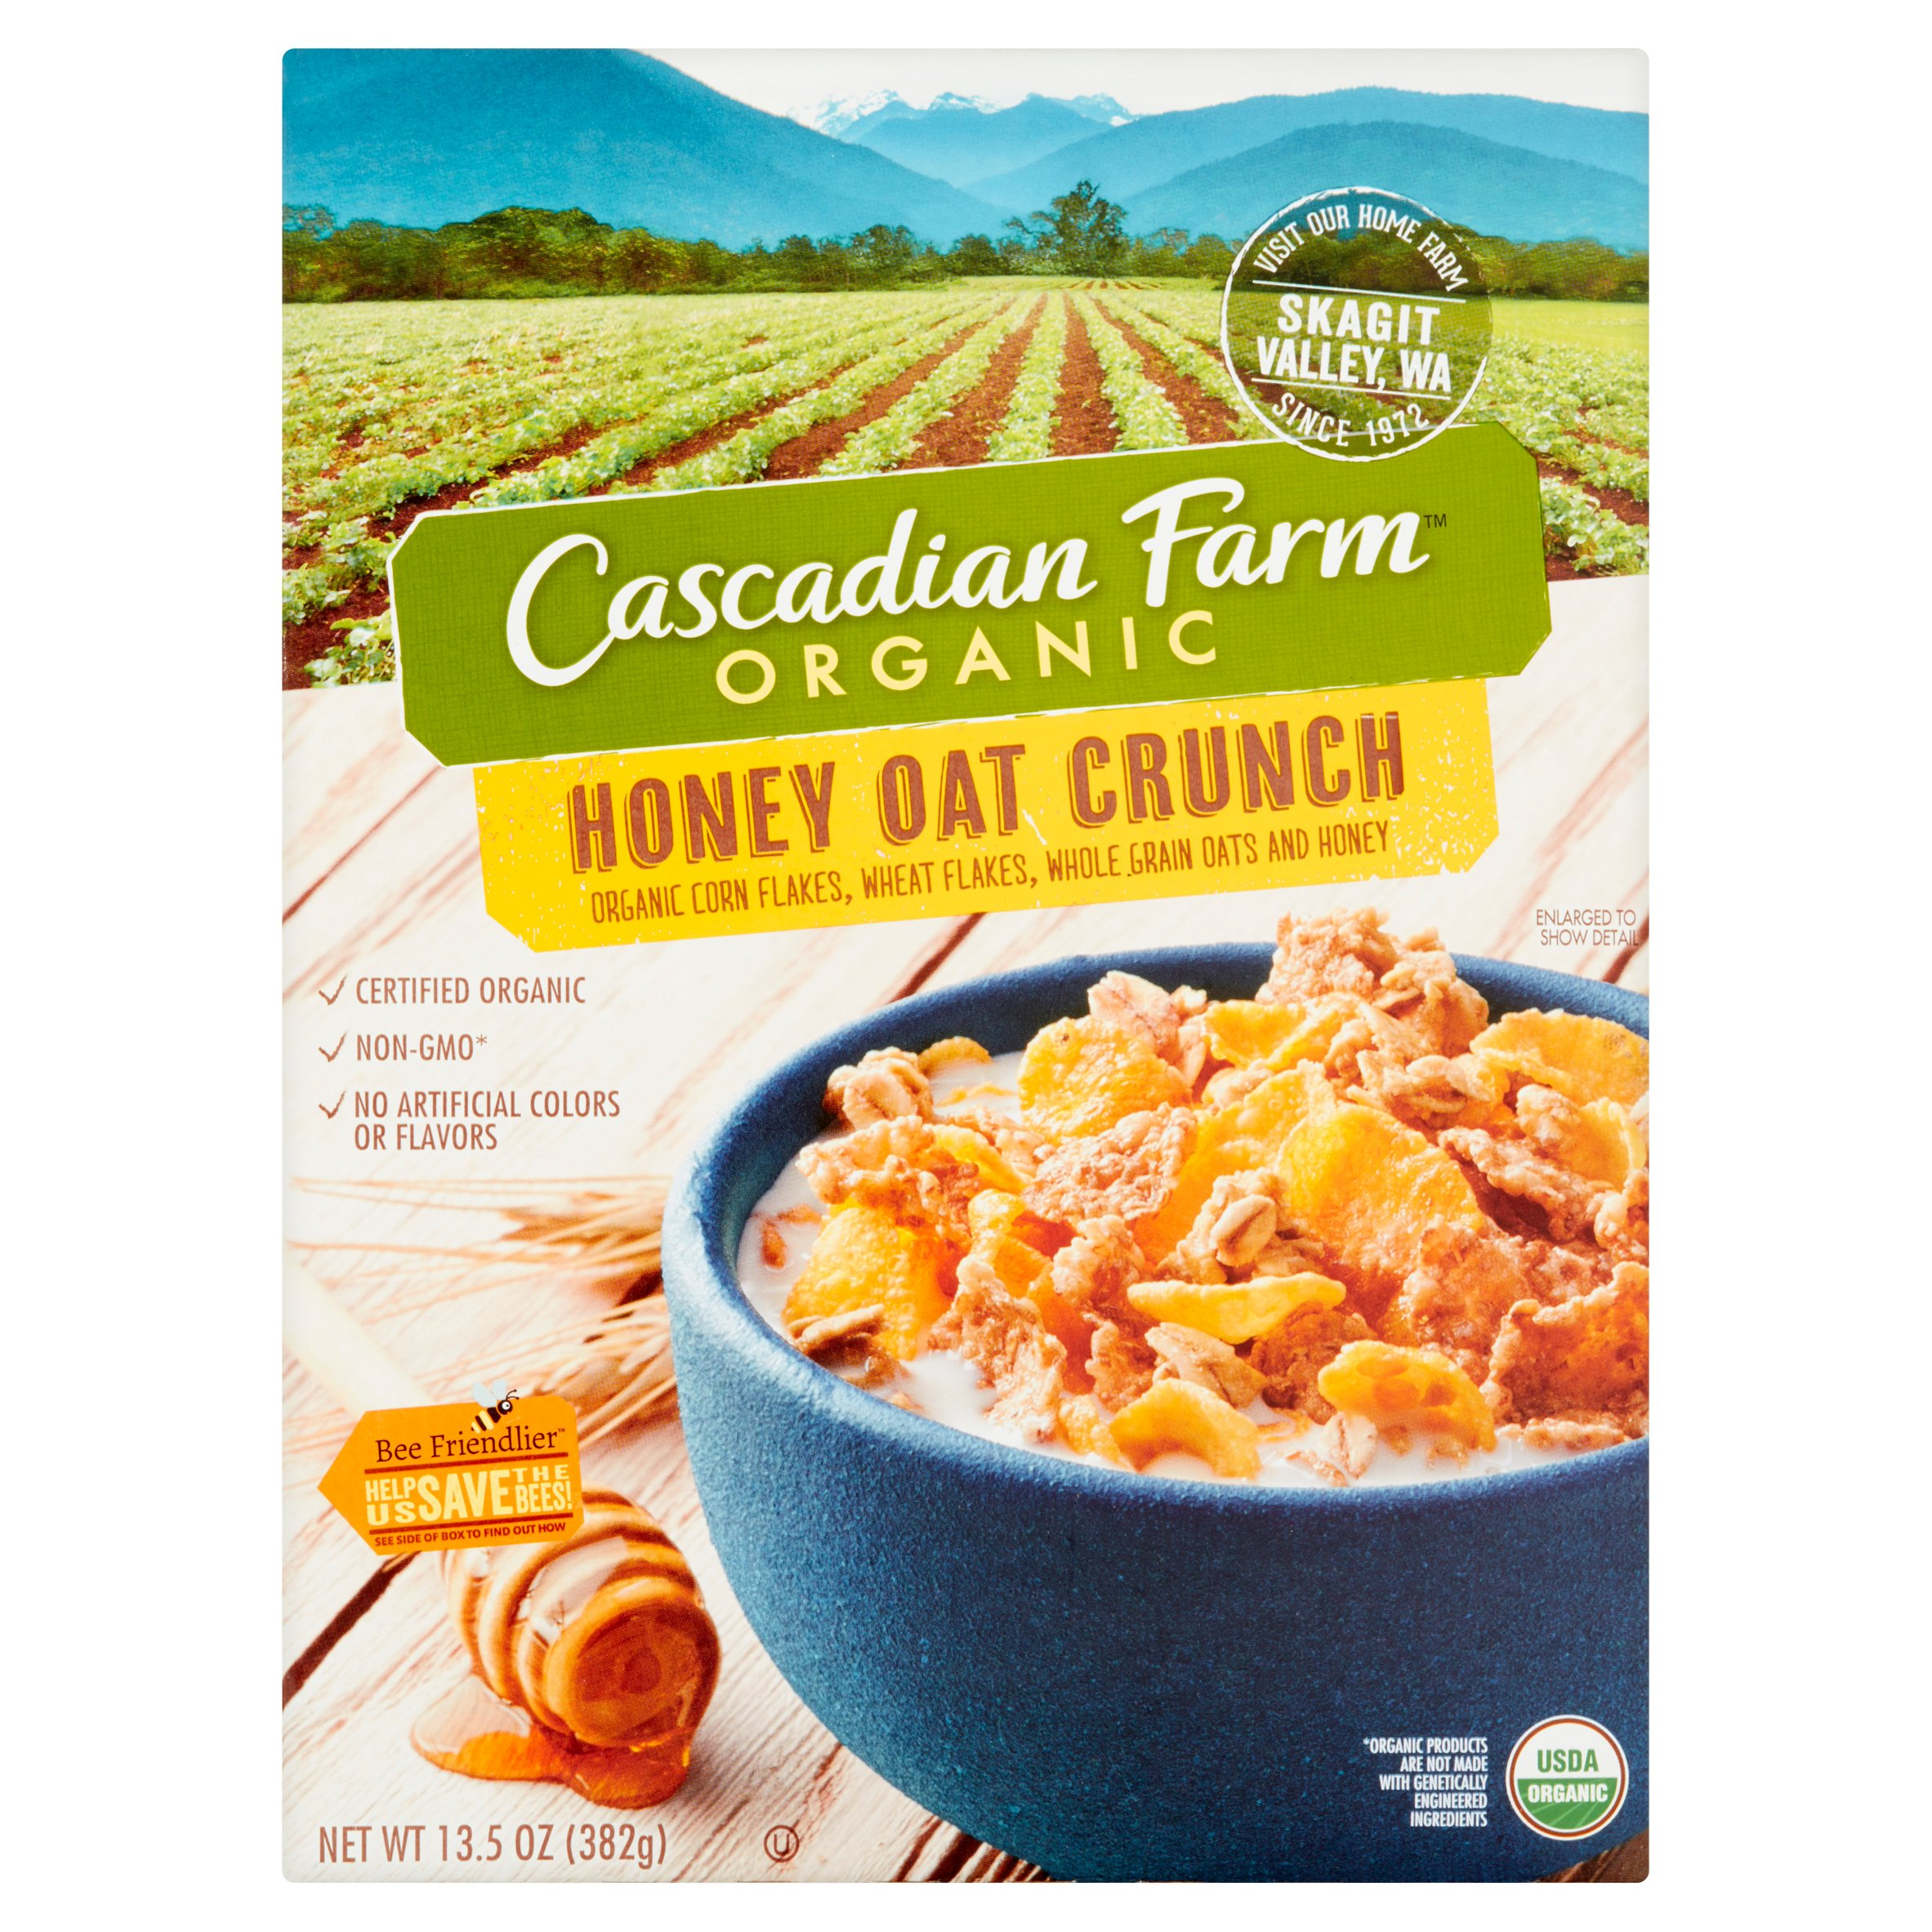 Cascadian Farm Organic Honey Oat Crunch 13.5oz by SMALL PLANET FOODS, INC.